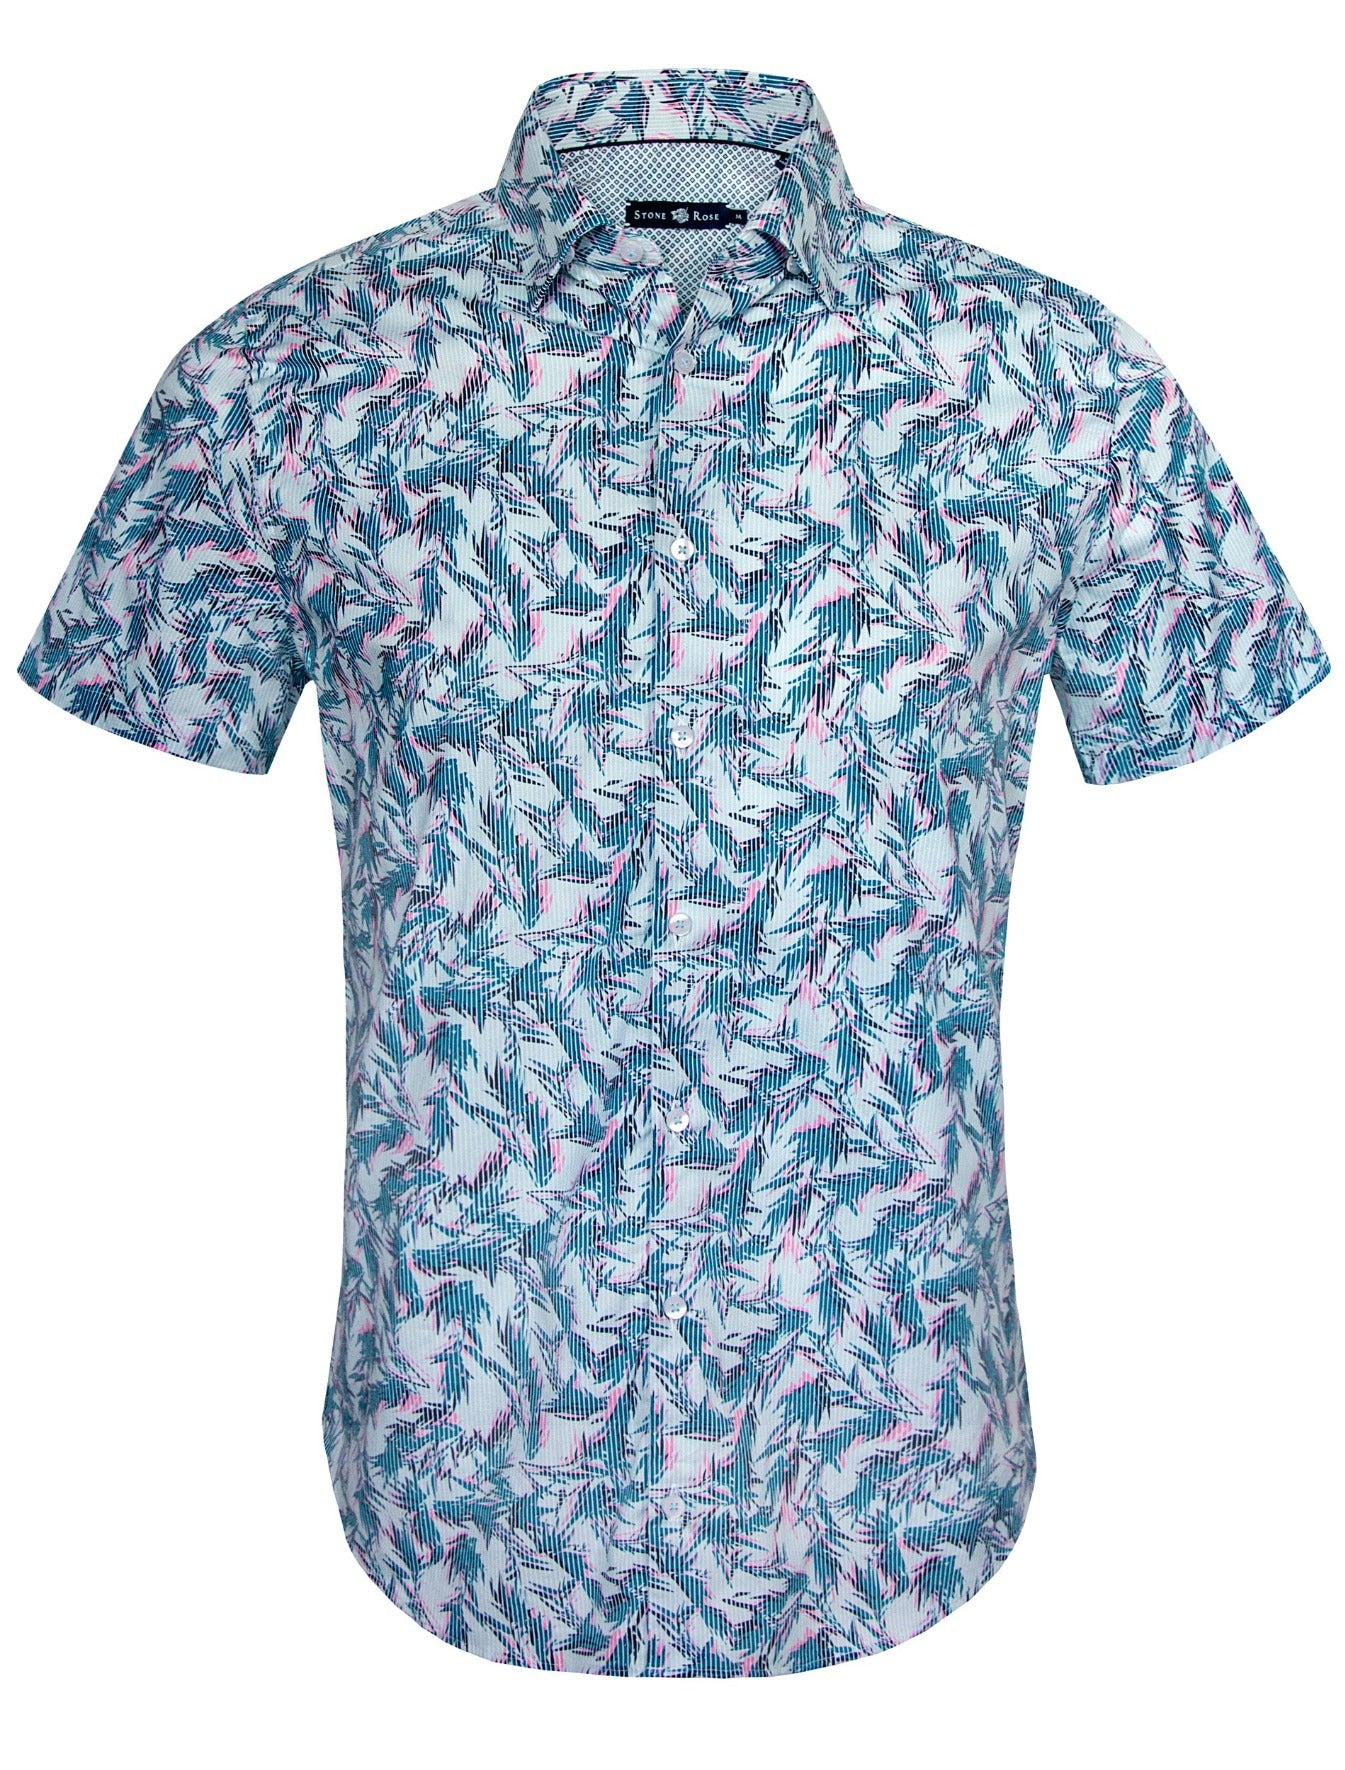 Blue Foliage Print Short Sleeve Shirt